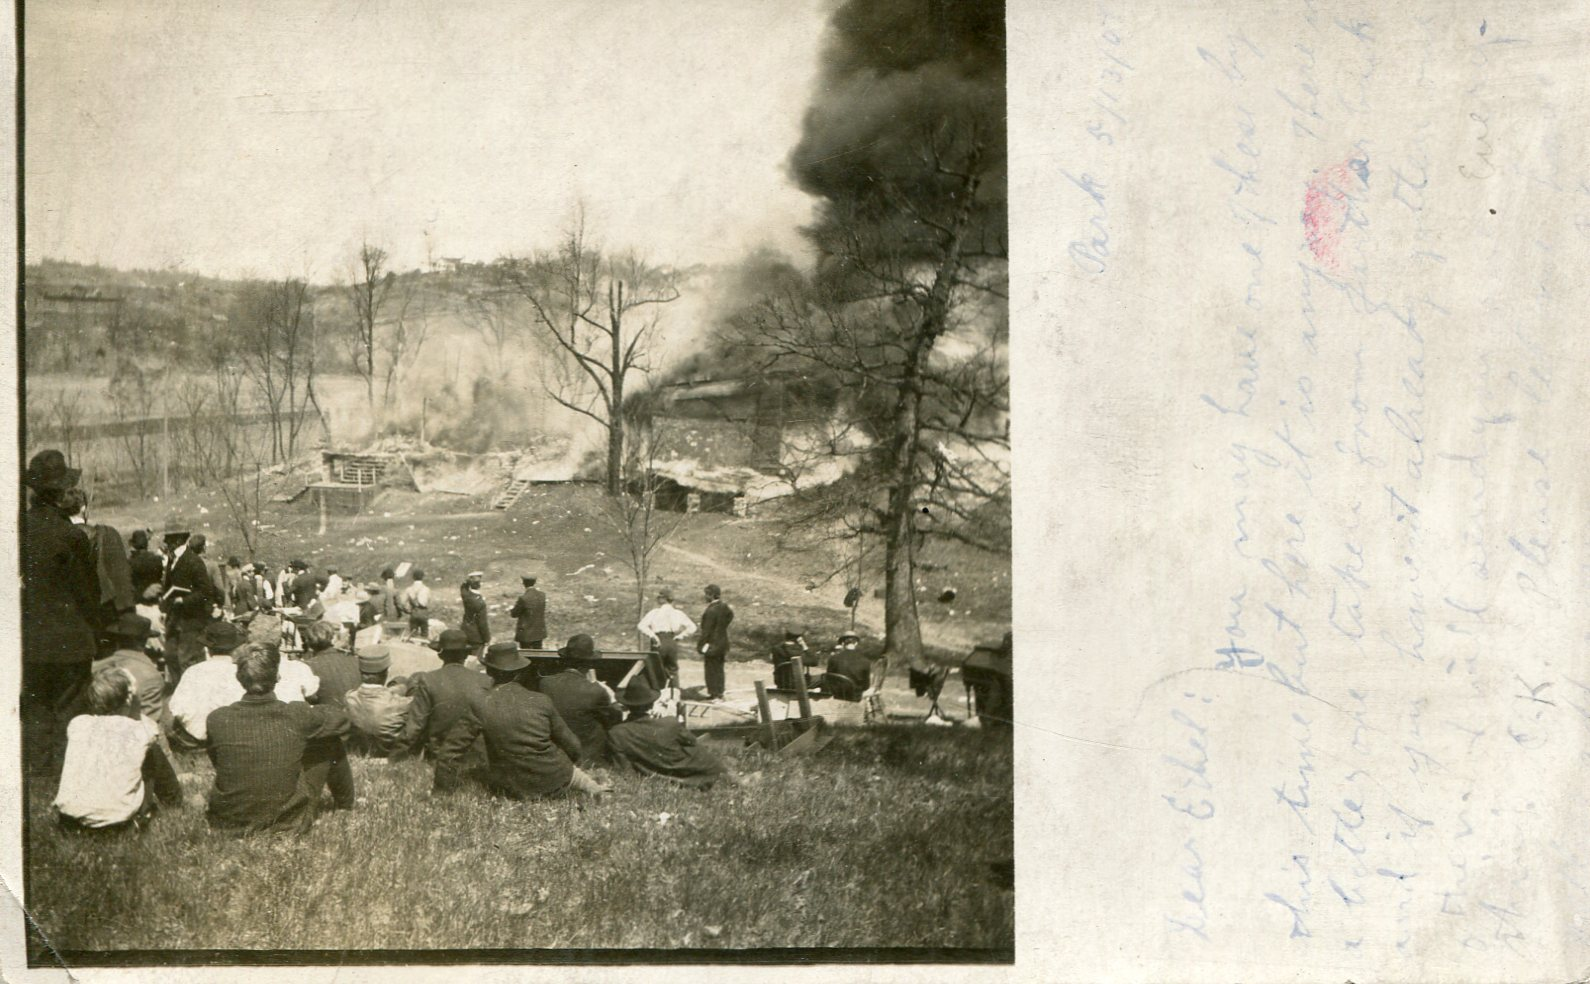 A photo of the Sherwood House fire in 1907.